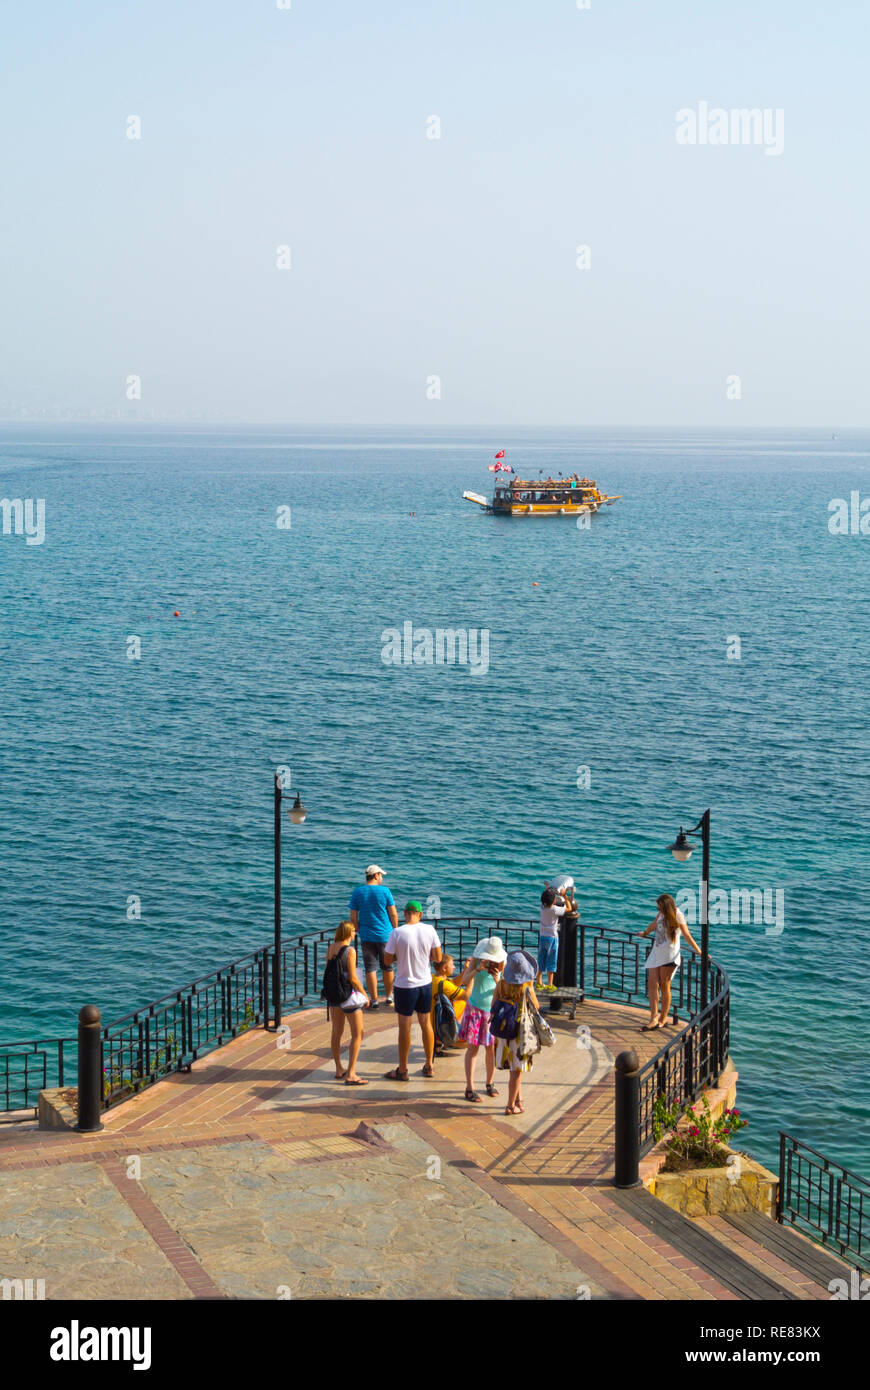 Viewing look-out point by the harbour, Alanya, Turkey, Eurasia - Stock Image